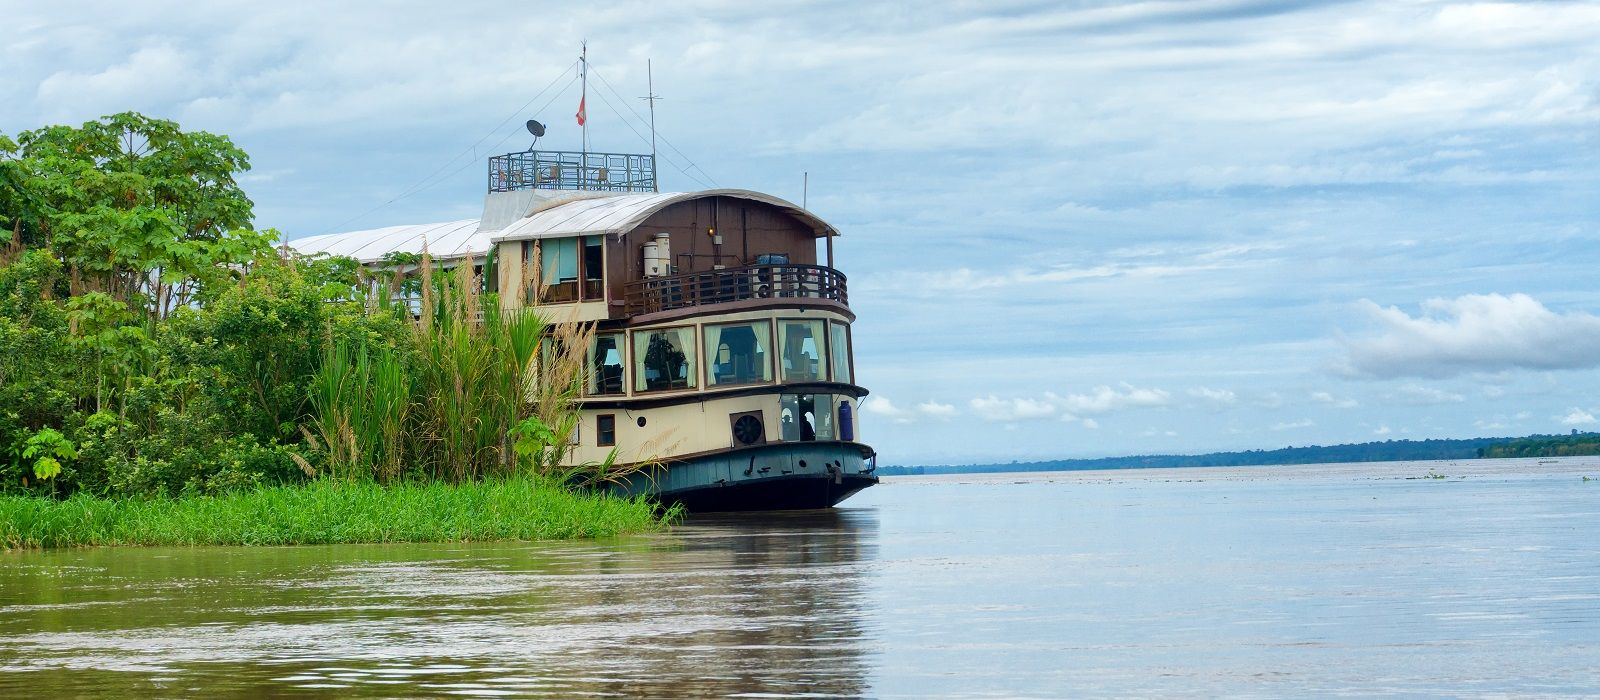 Destination Iquitos Cruise Peru